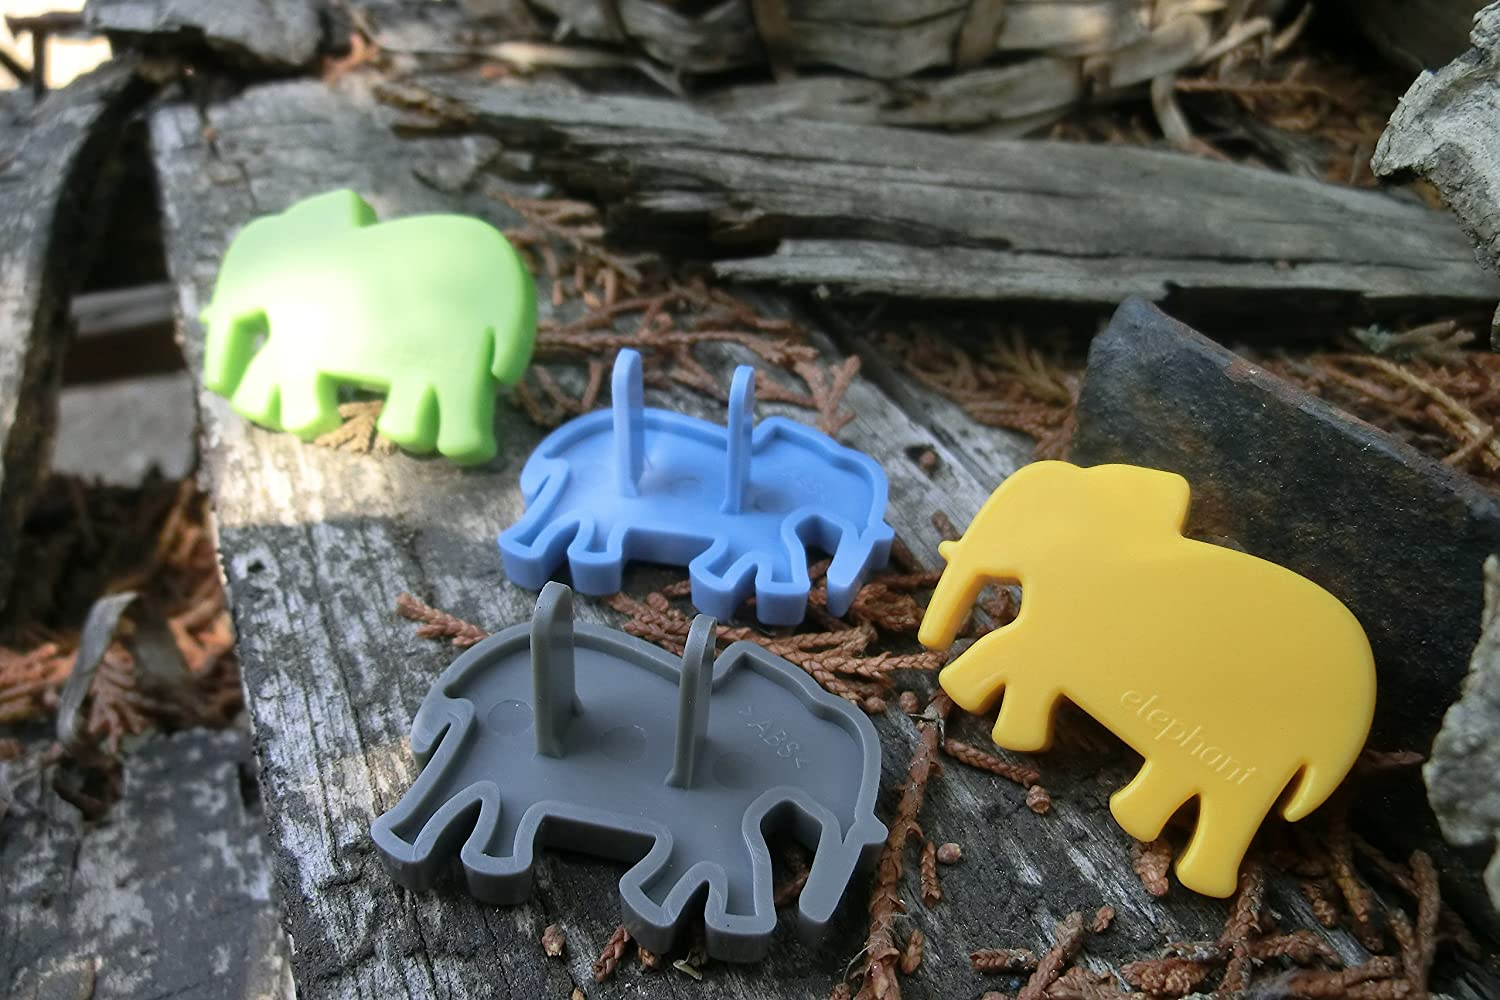 Baby Cool Pack of 4 Cute Animal Outlet Safety Cover - Wonderful Baby Shower Gift (ELEPHANT) AQ-004